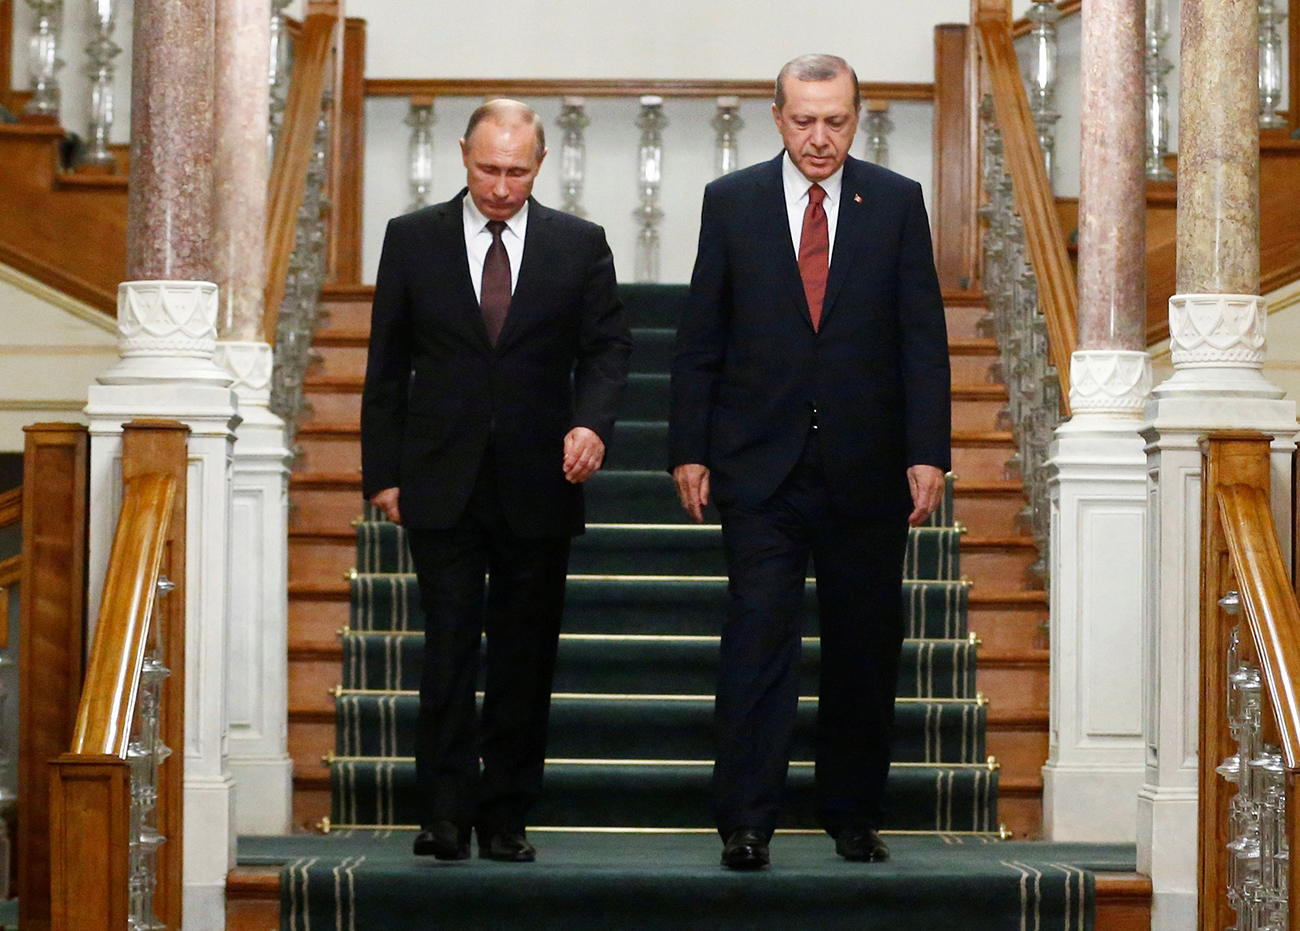 Russian and Turkish presidents Vladimir Putin and Tayyip Erdogan arrive for a news conference following their meeting in Istanbul, Oct. 10, 2016.